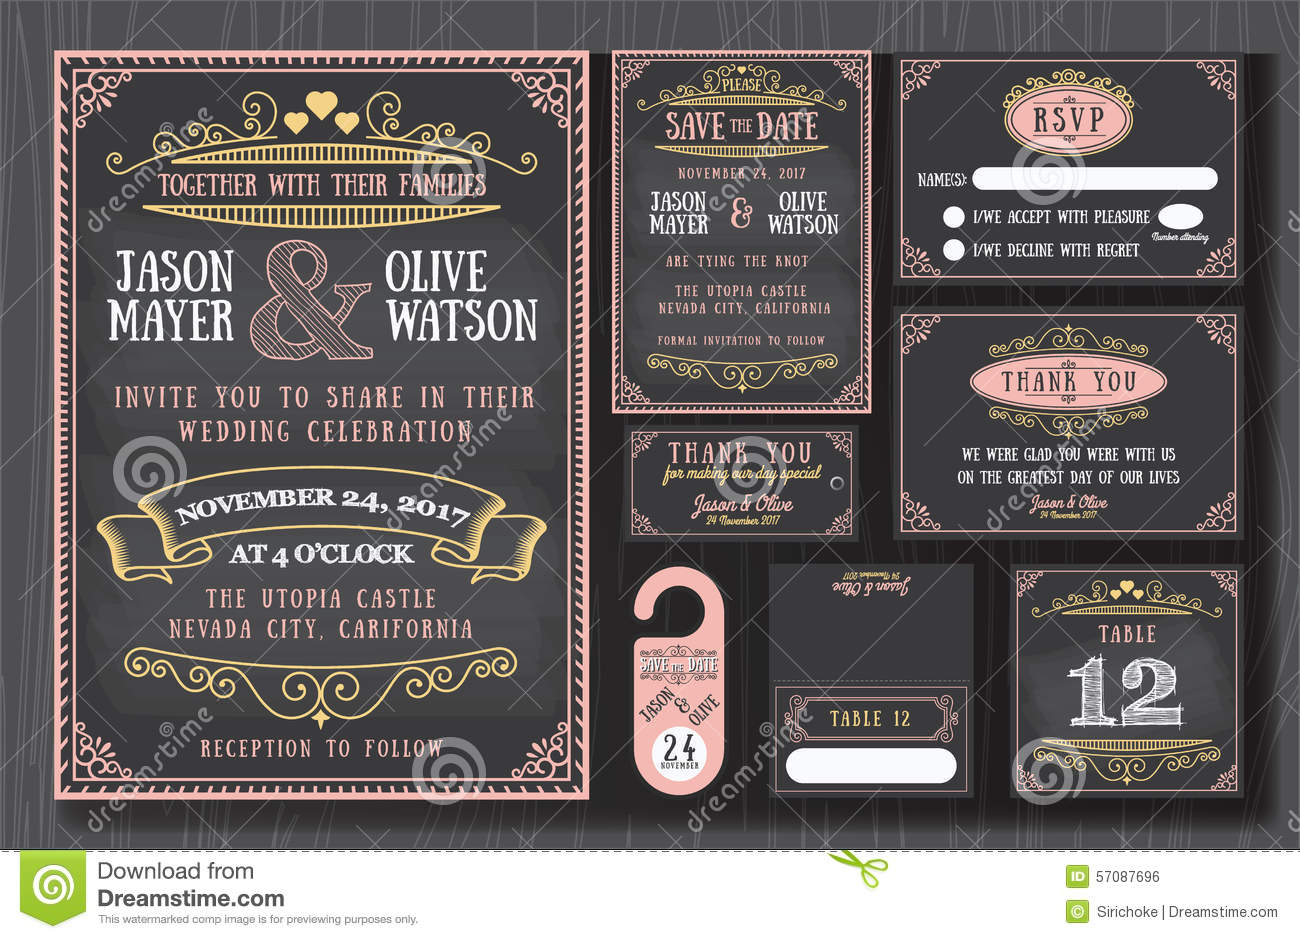 Wedding Renewal Invitations as awesome invitation example